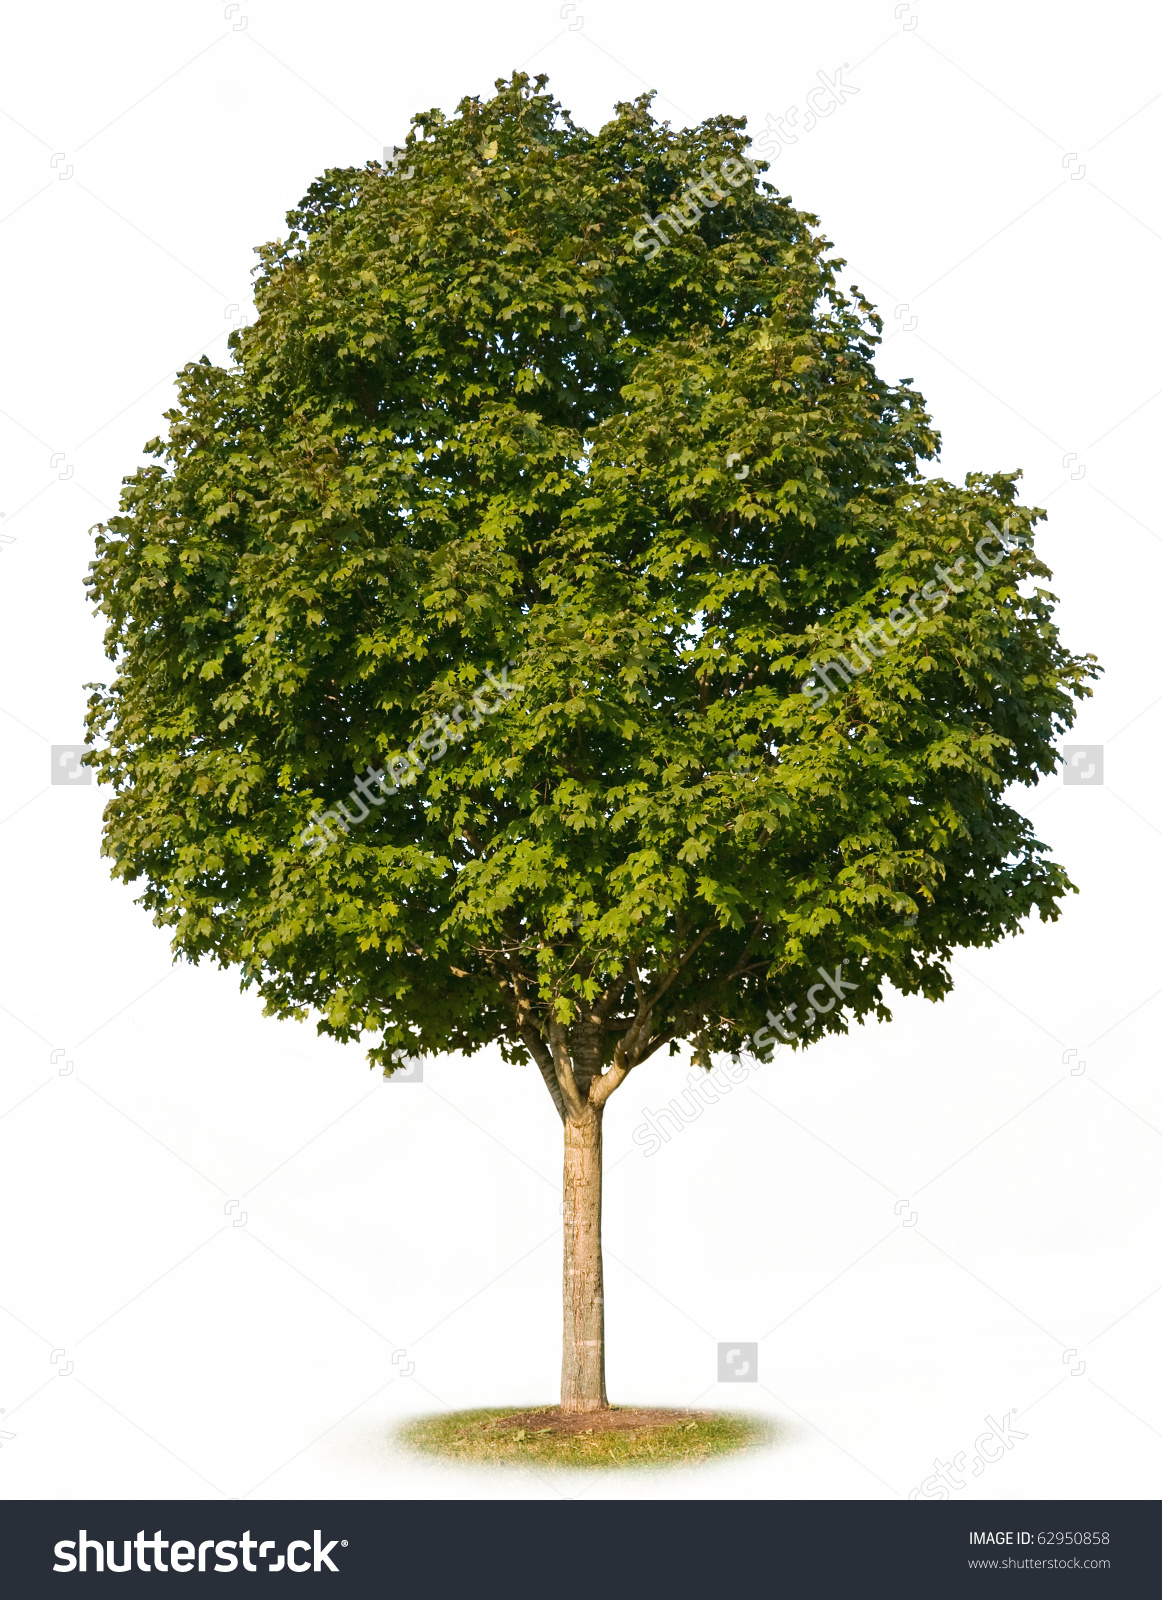 Sugar Maple Tree Acer Saccharum Isolated Stock Photo 62950858.